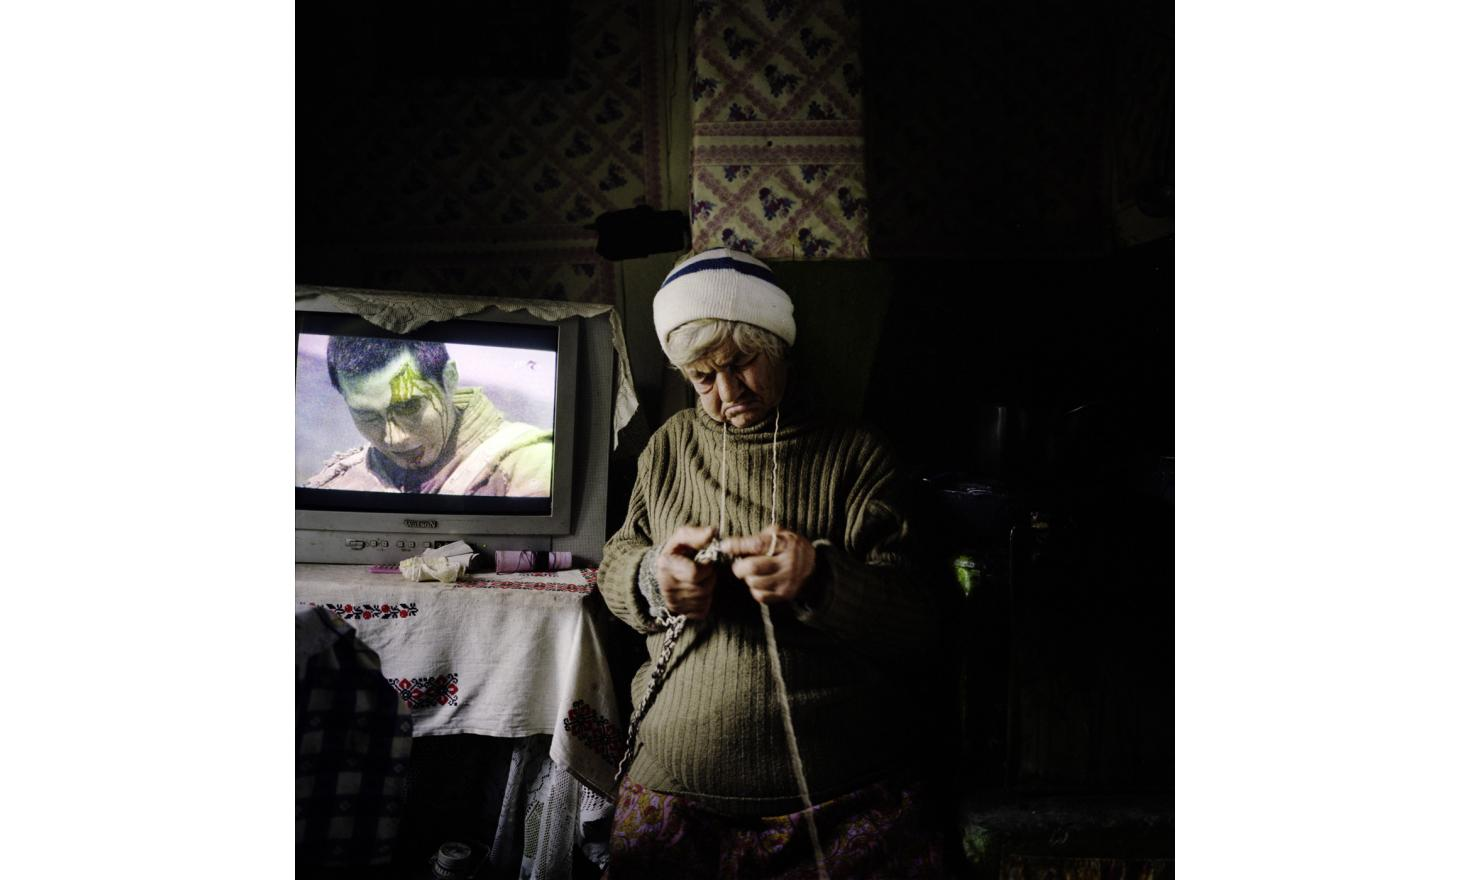 Varvara in her house, in the village of Cardon, not far from Sulina. She died a few weeks after the photo.